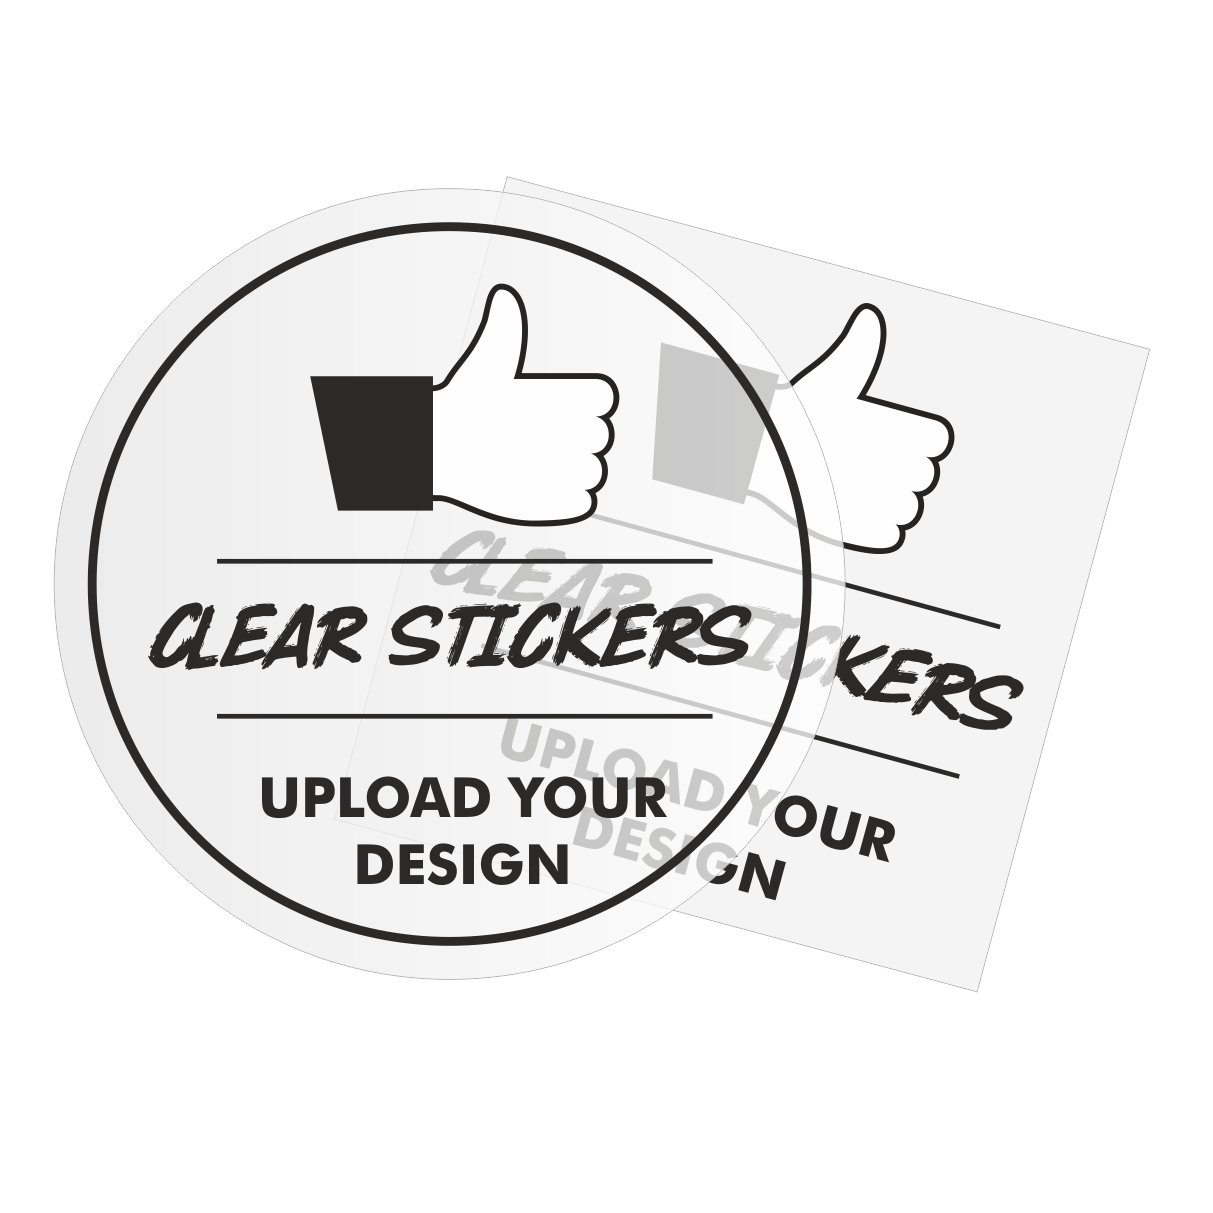 Clear Stickers — Stickers and Decals - Custom Sticker Printing Company and  Vinyl Decal Makers